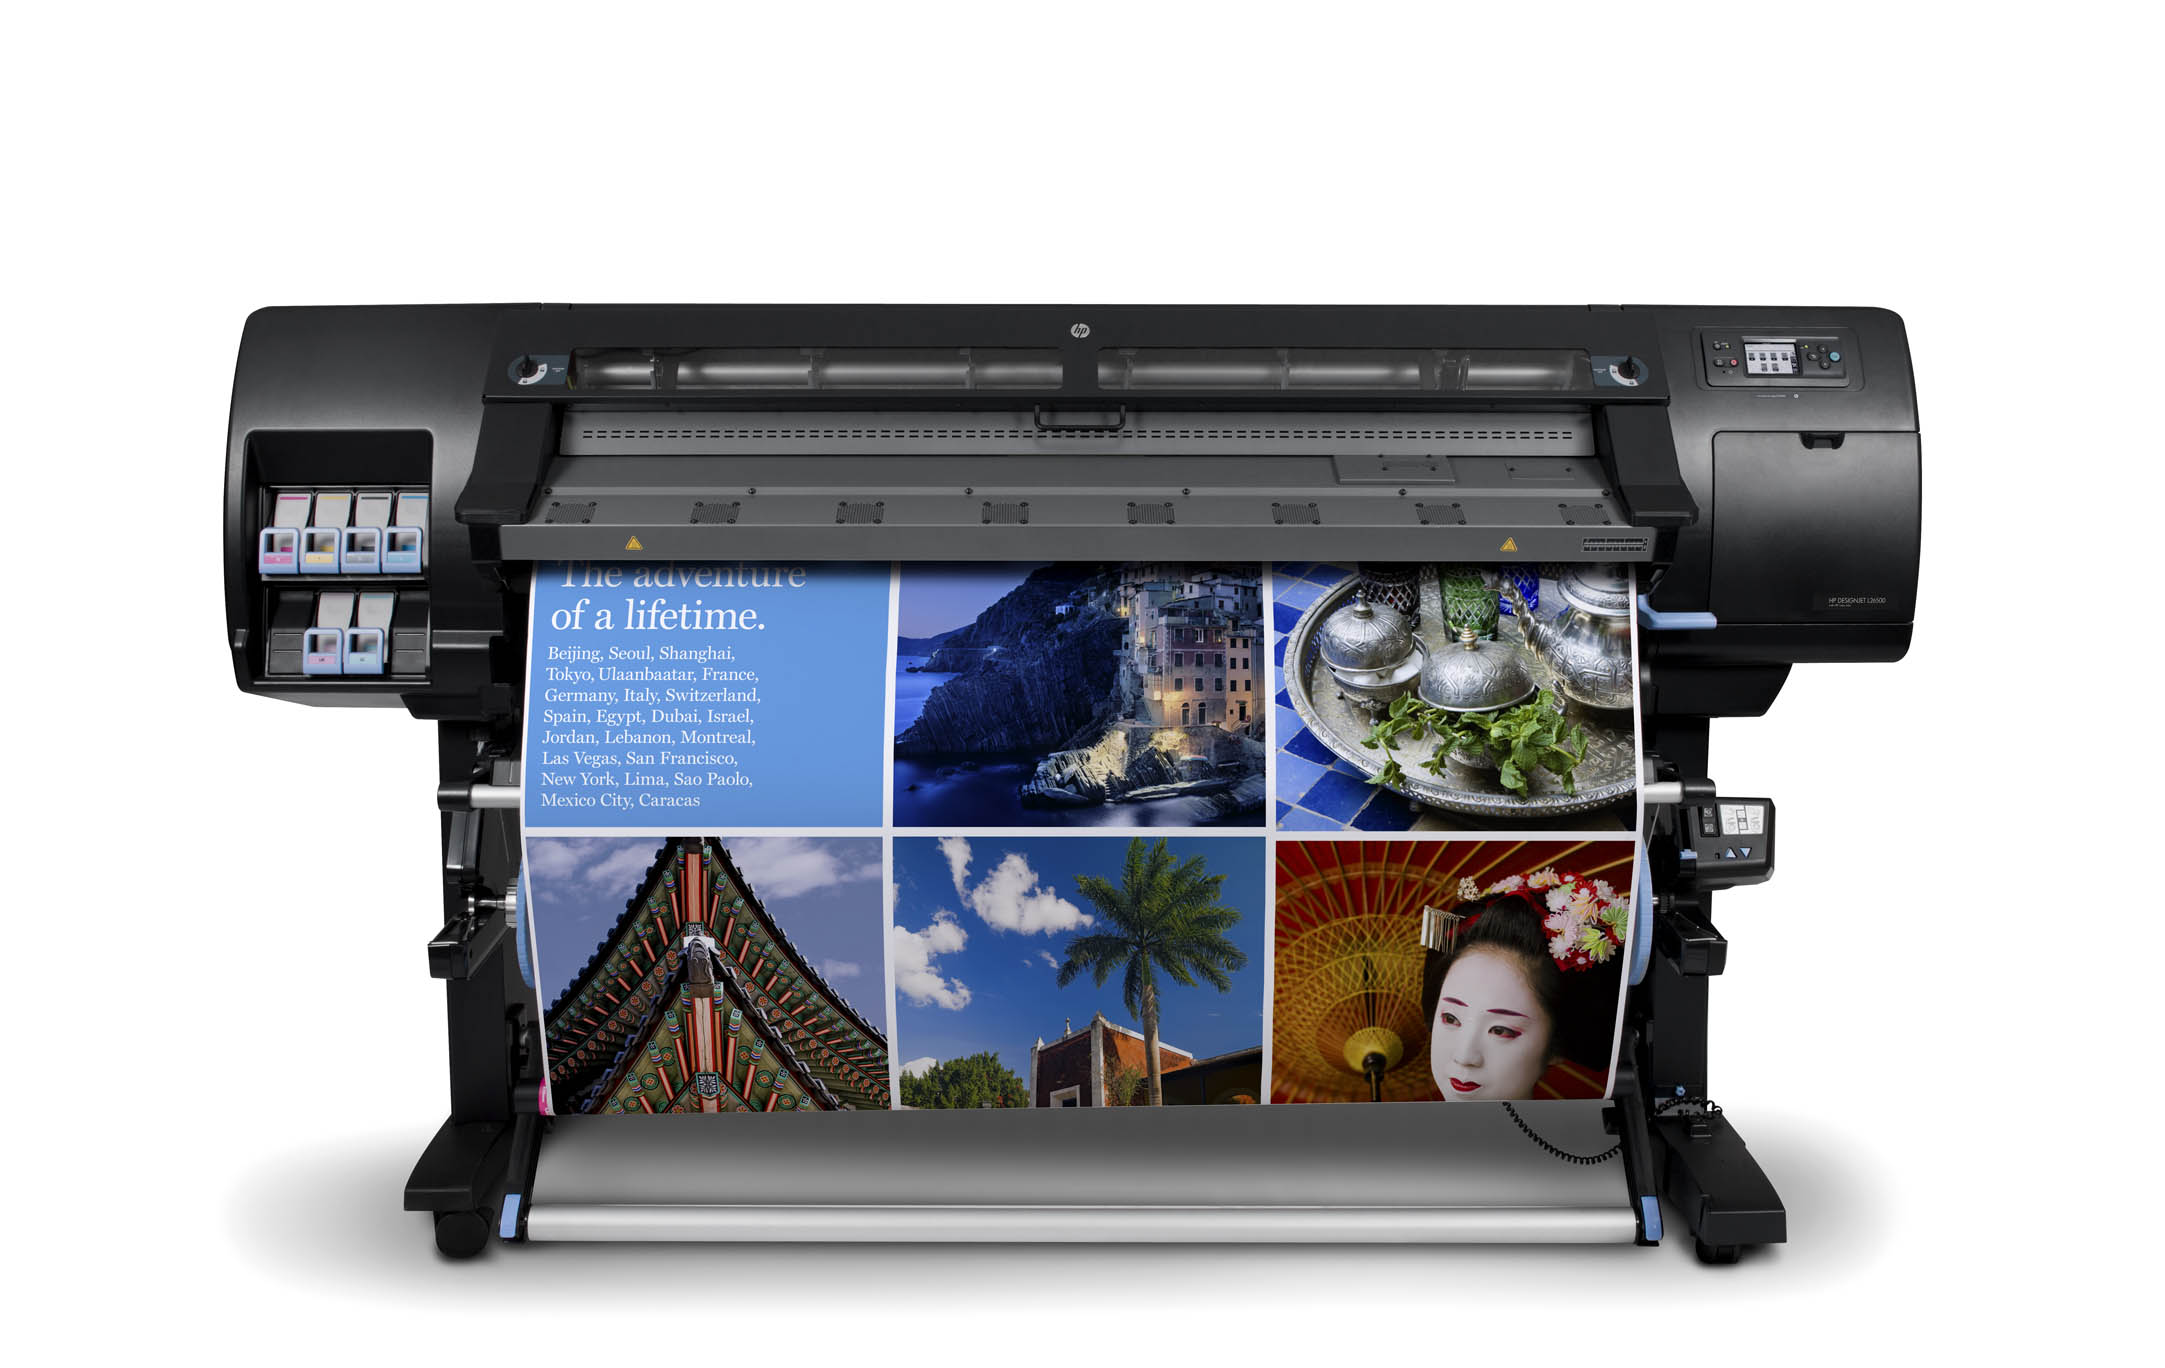 HP 26500 Roll-To-Roll Printer